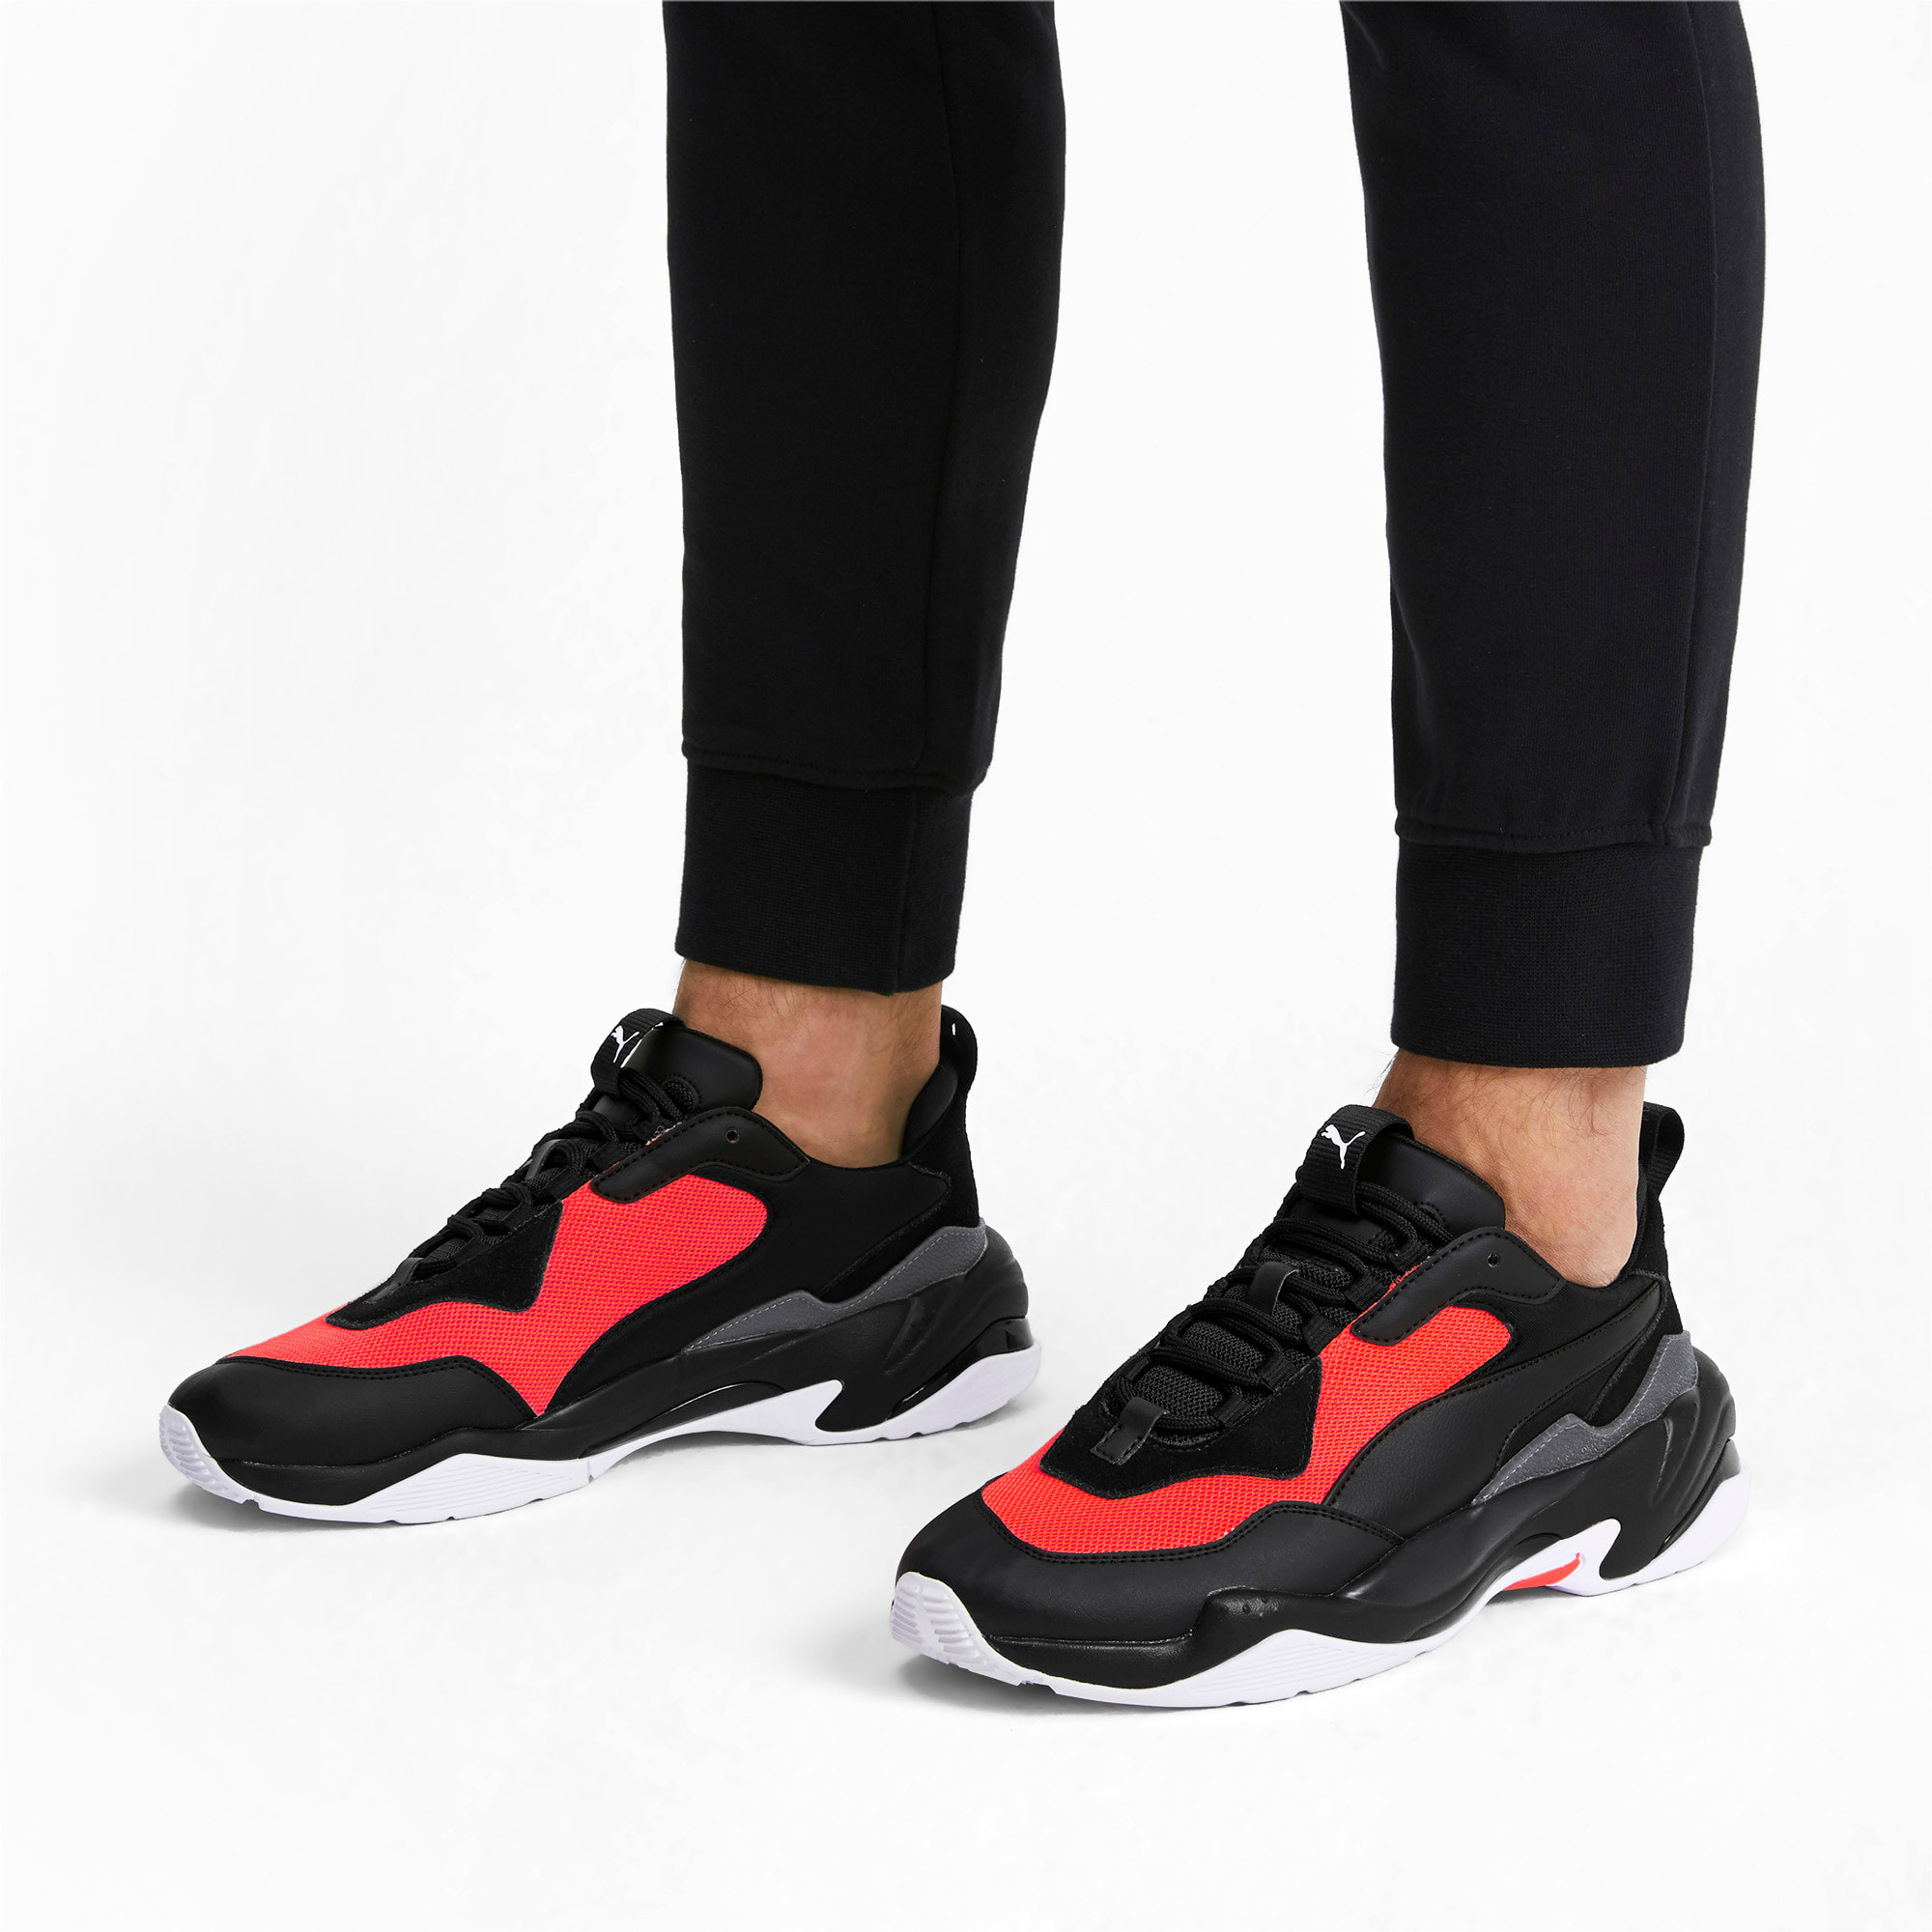 Thumbnail 2 of Thunder Fashion 2.0 Trainers, Puma Black-Nrgy Red, medium